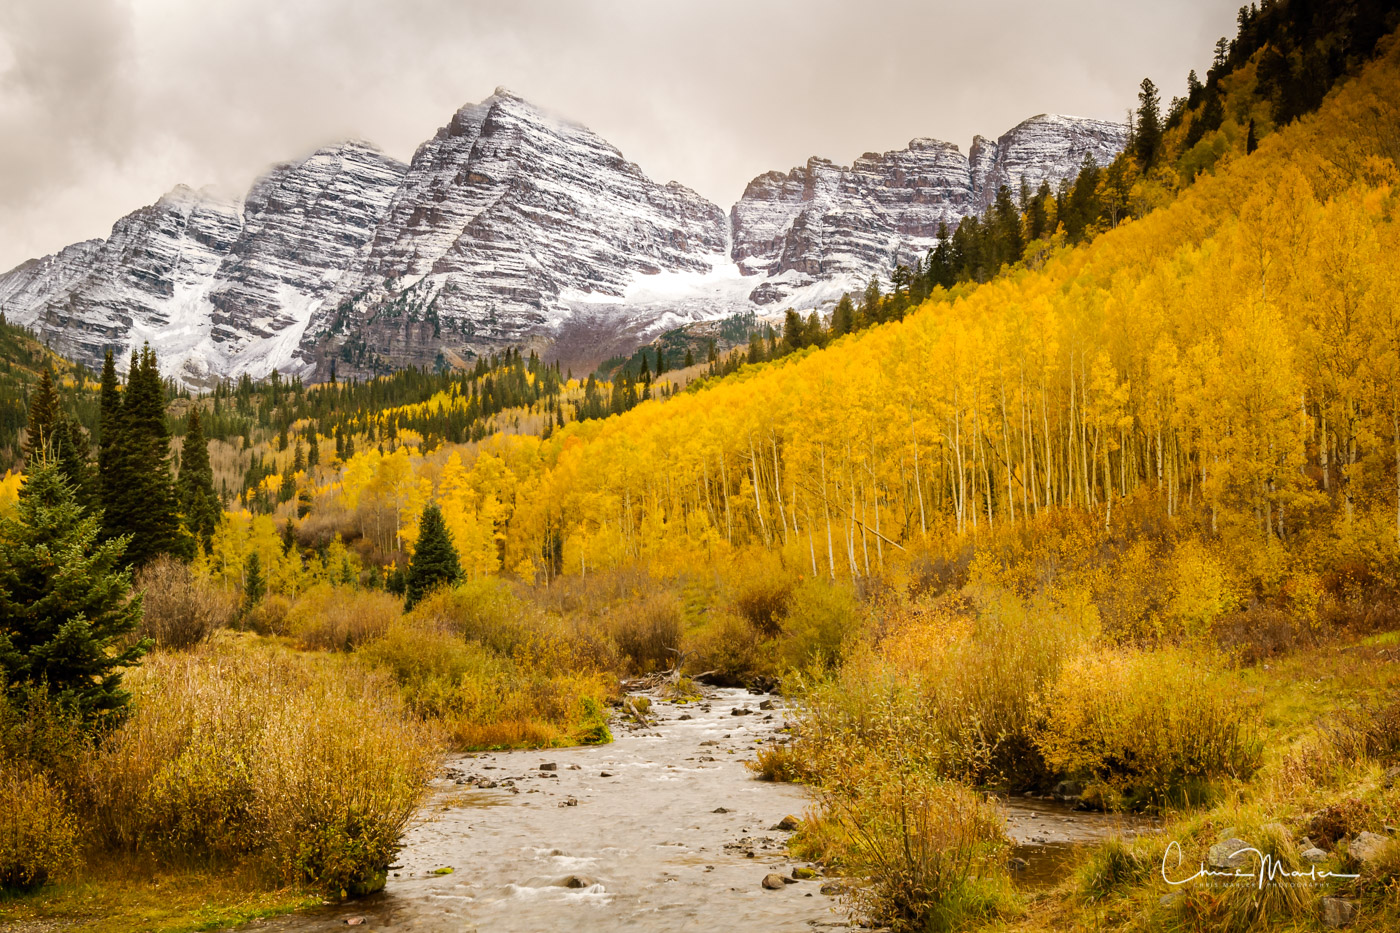 Maroon Bells in the Elk Mountains of Colorado is one of the most photographed mountain peaks in the country, especially when...